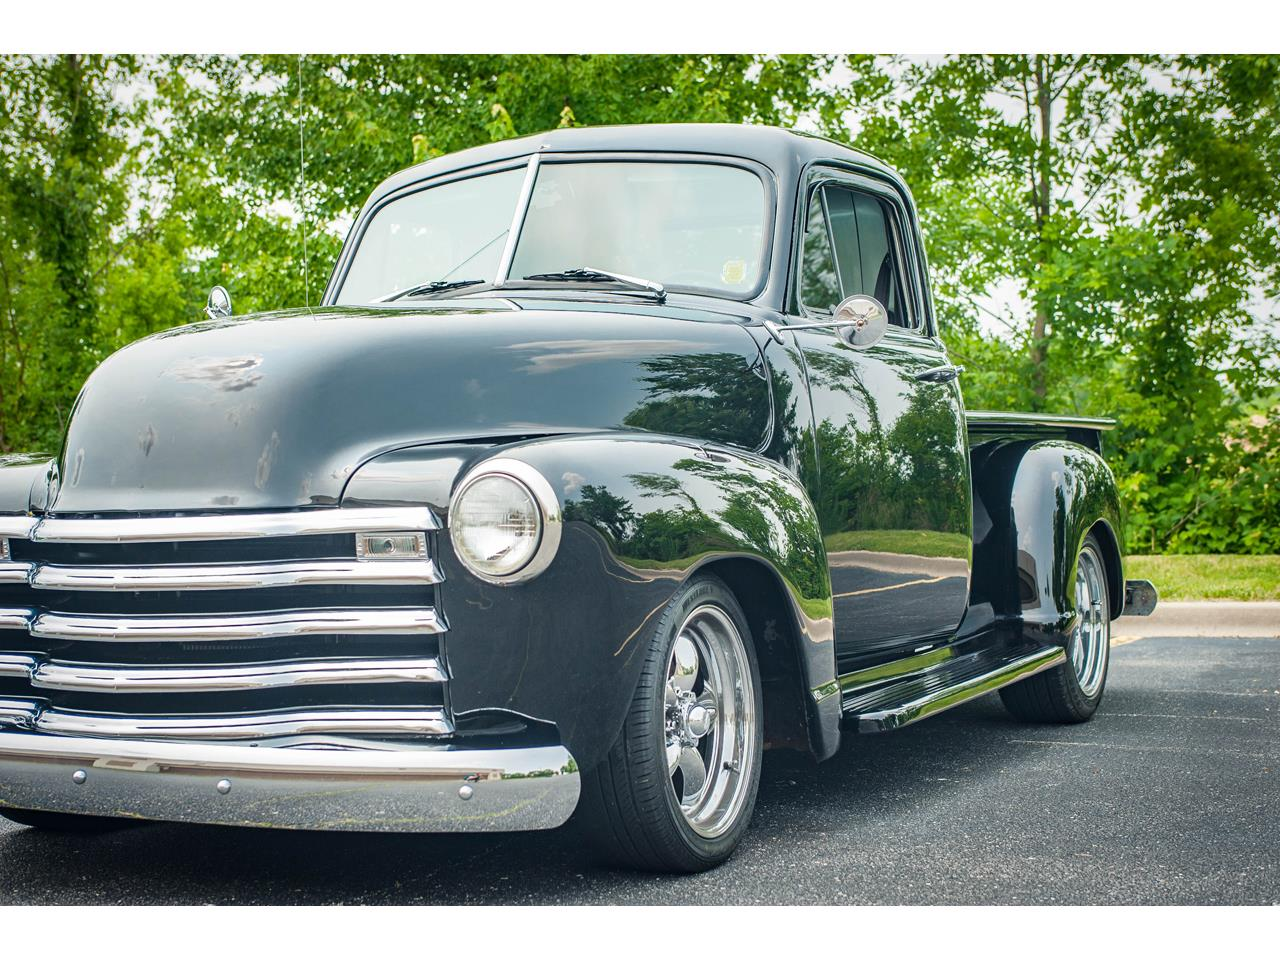 Large Picture of '48 Chevrolet 3100 - $42,000.00 Offered by Gateway Classic Cars - St. Louis - QBA0